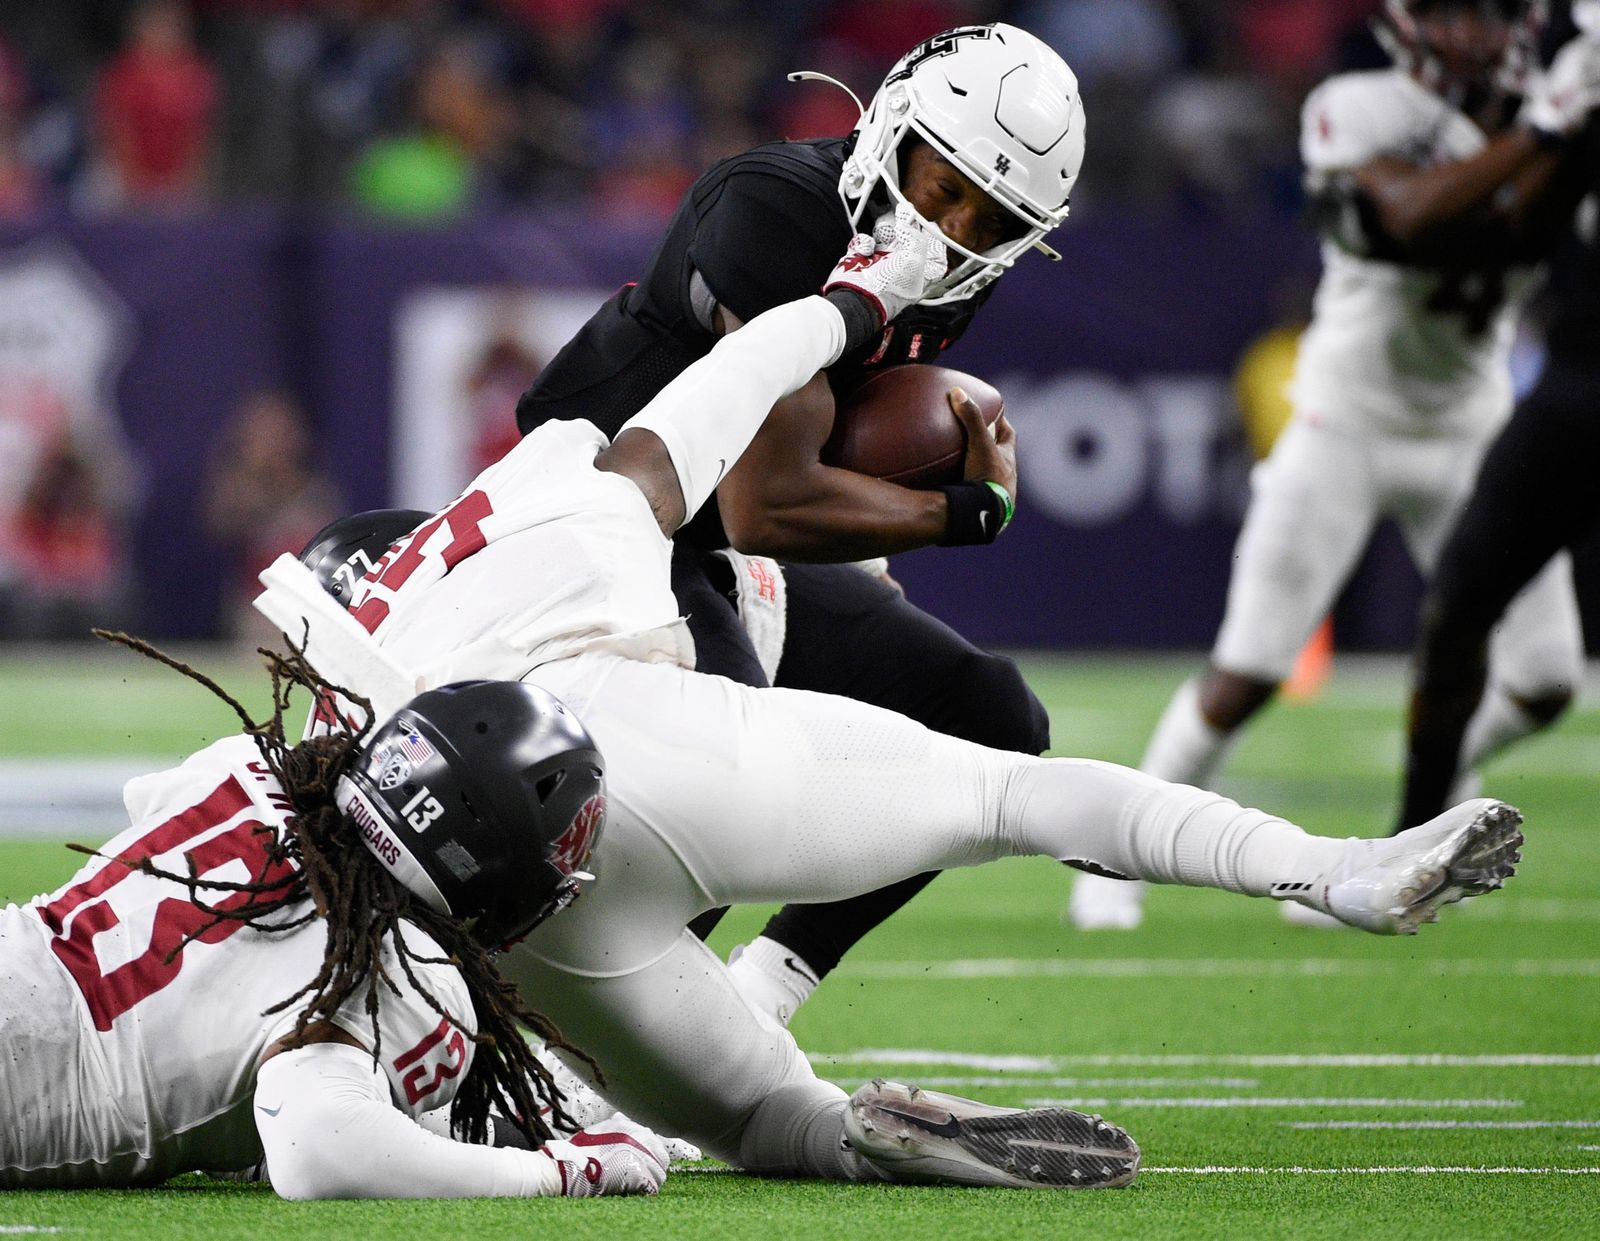 Houston quarterback D'Eriq King, top, escapes the sack attempt of Washington State's Willie Taylor III (27) during the first half of an NCAA college football game Friday, Sept. 13, 2019, in Houston. (AP Photo/Eric Christian Smith)